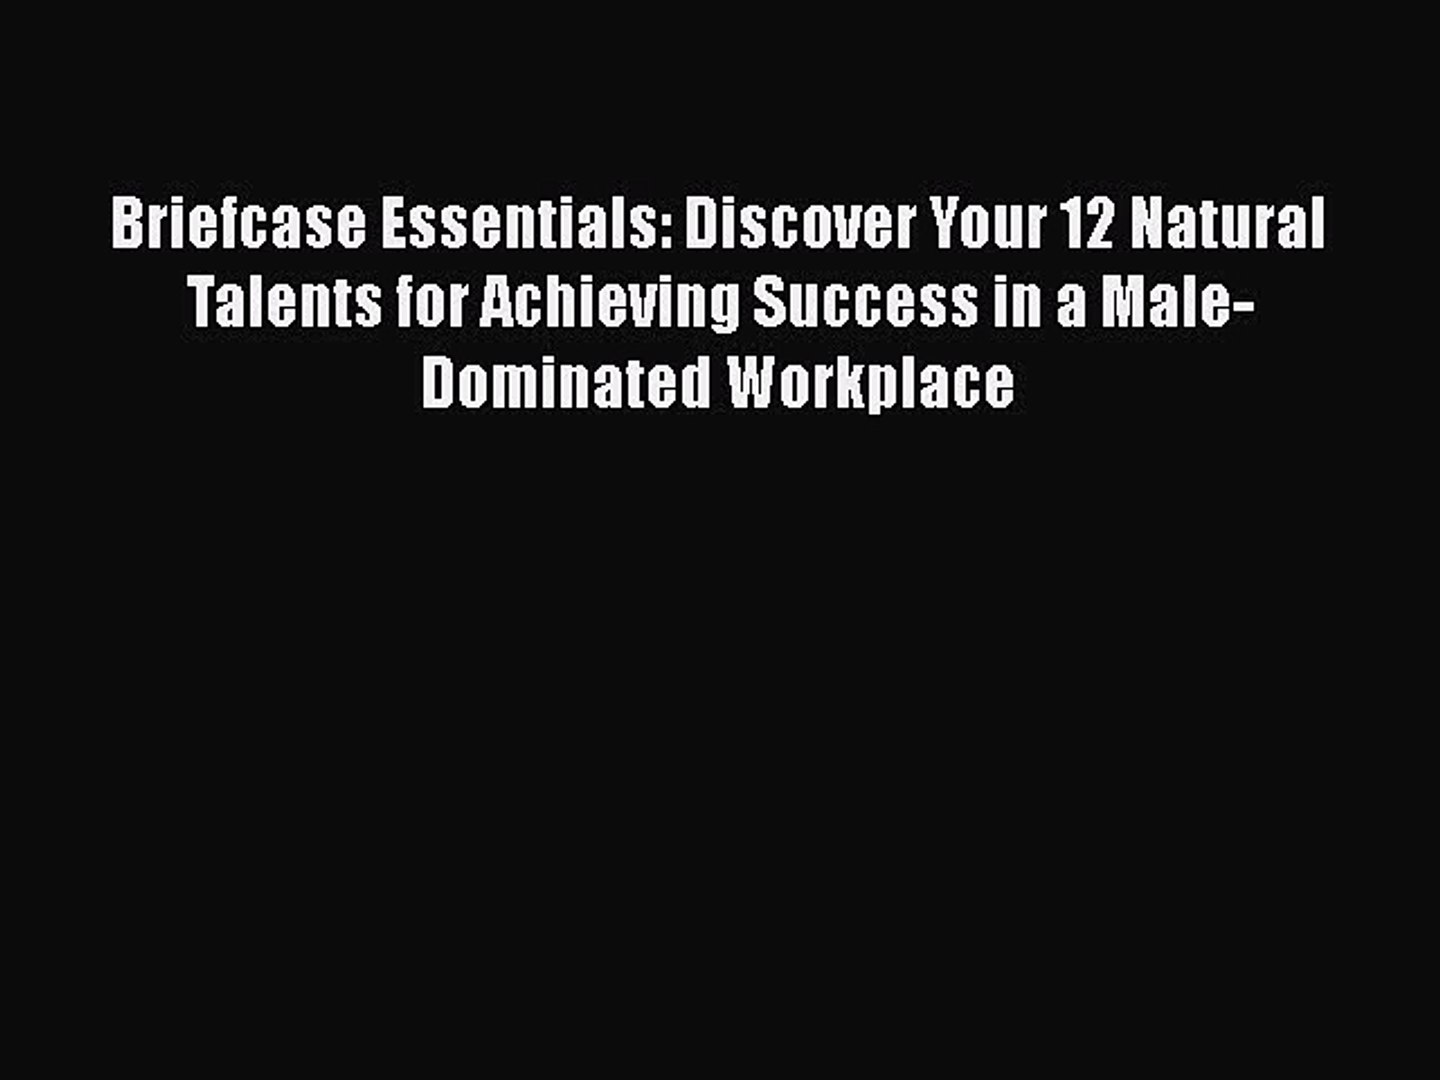 [PDF] Briefcase Essentials: Discover Your 12 Natural Talents for Achieving Success in a Male-Dominat